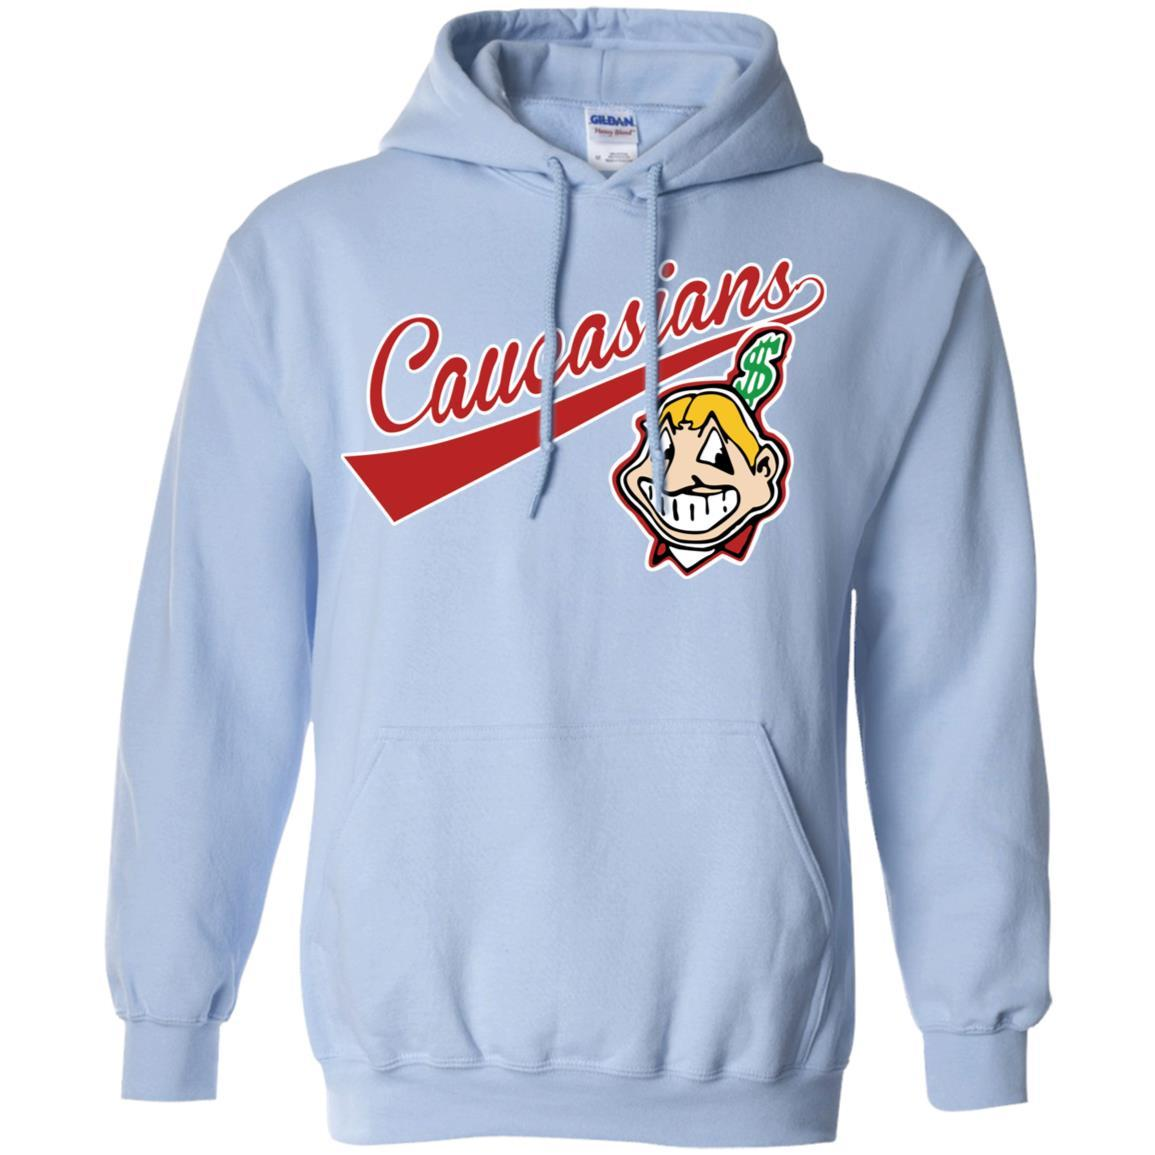 Cleveland Caucasians Native Go Indians - Pullover Hoodie Light Blue / 5XL